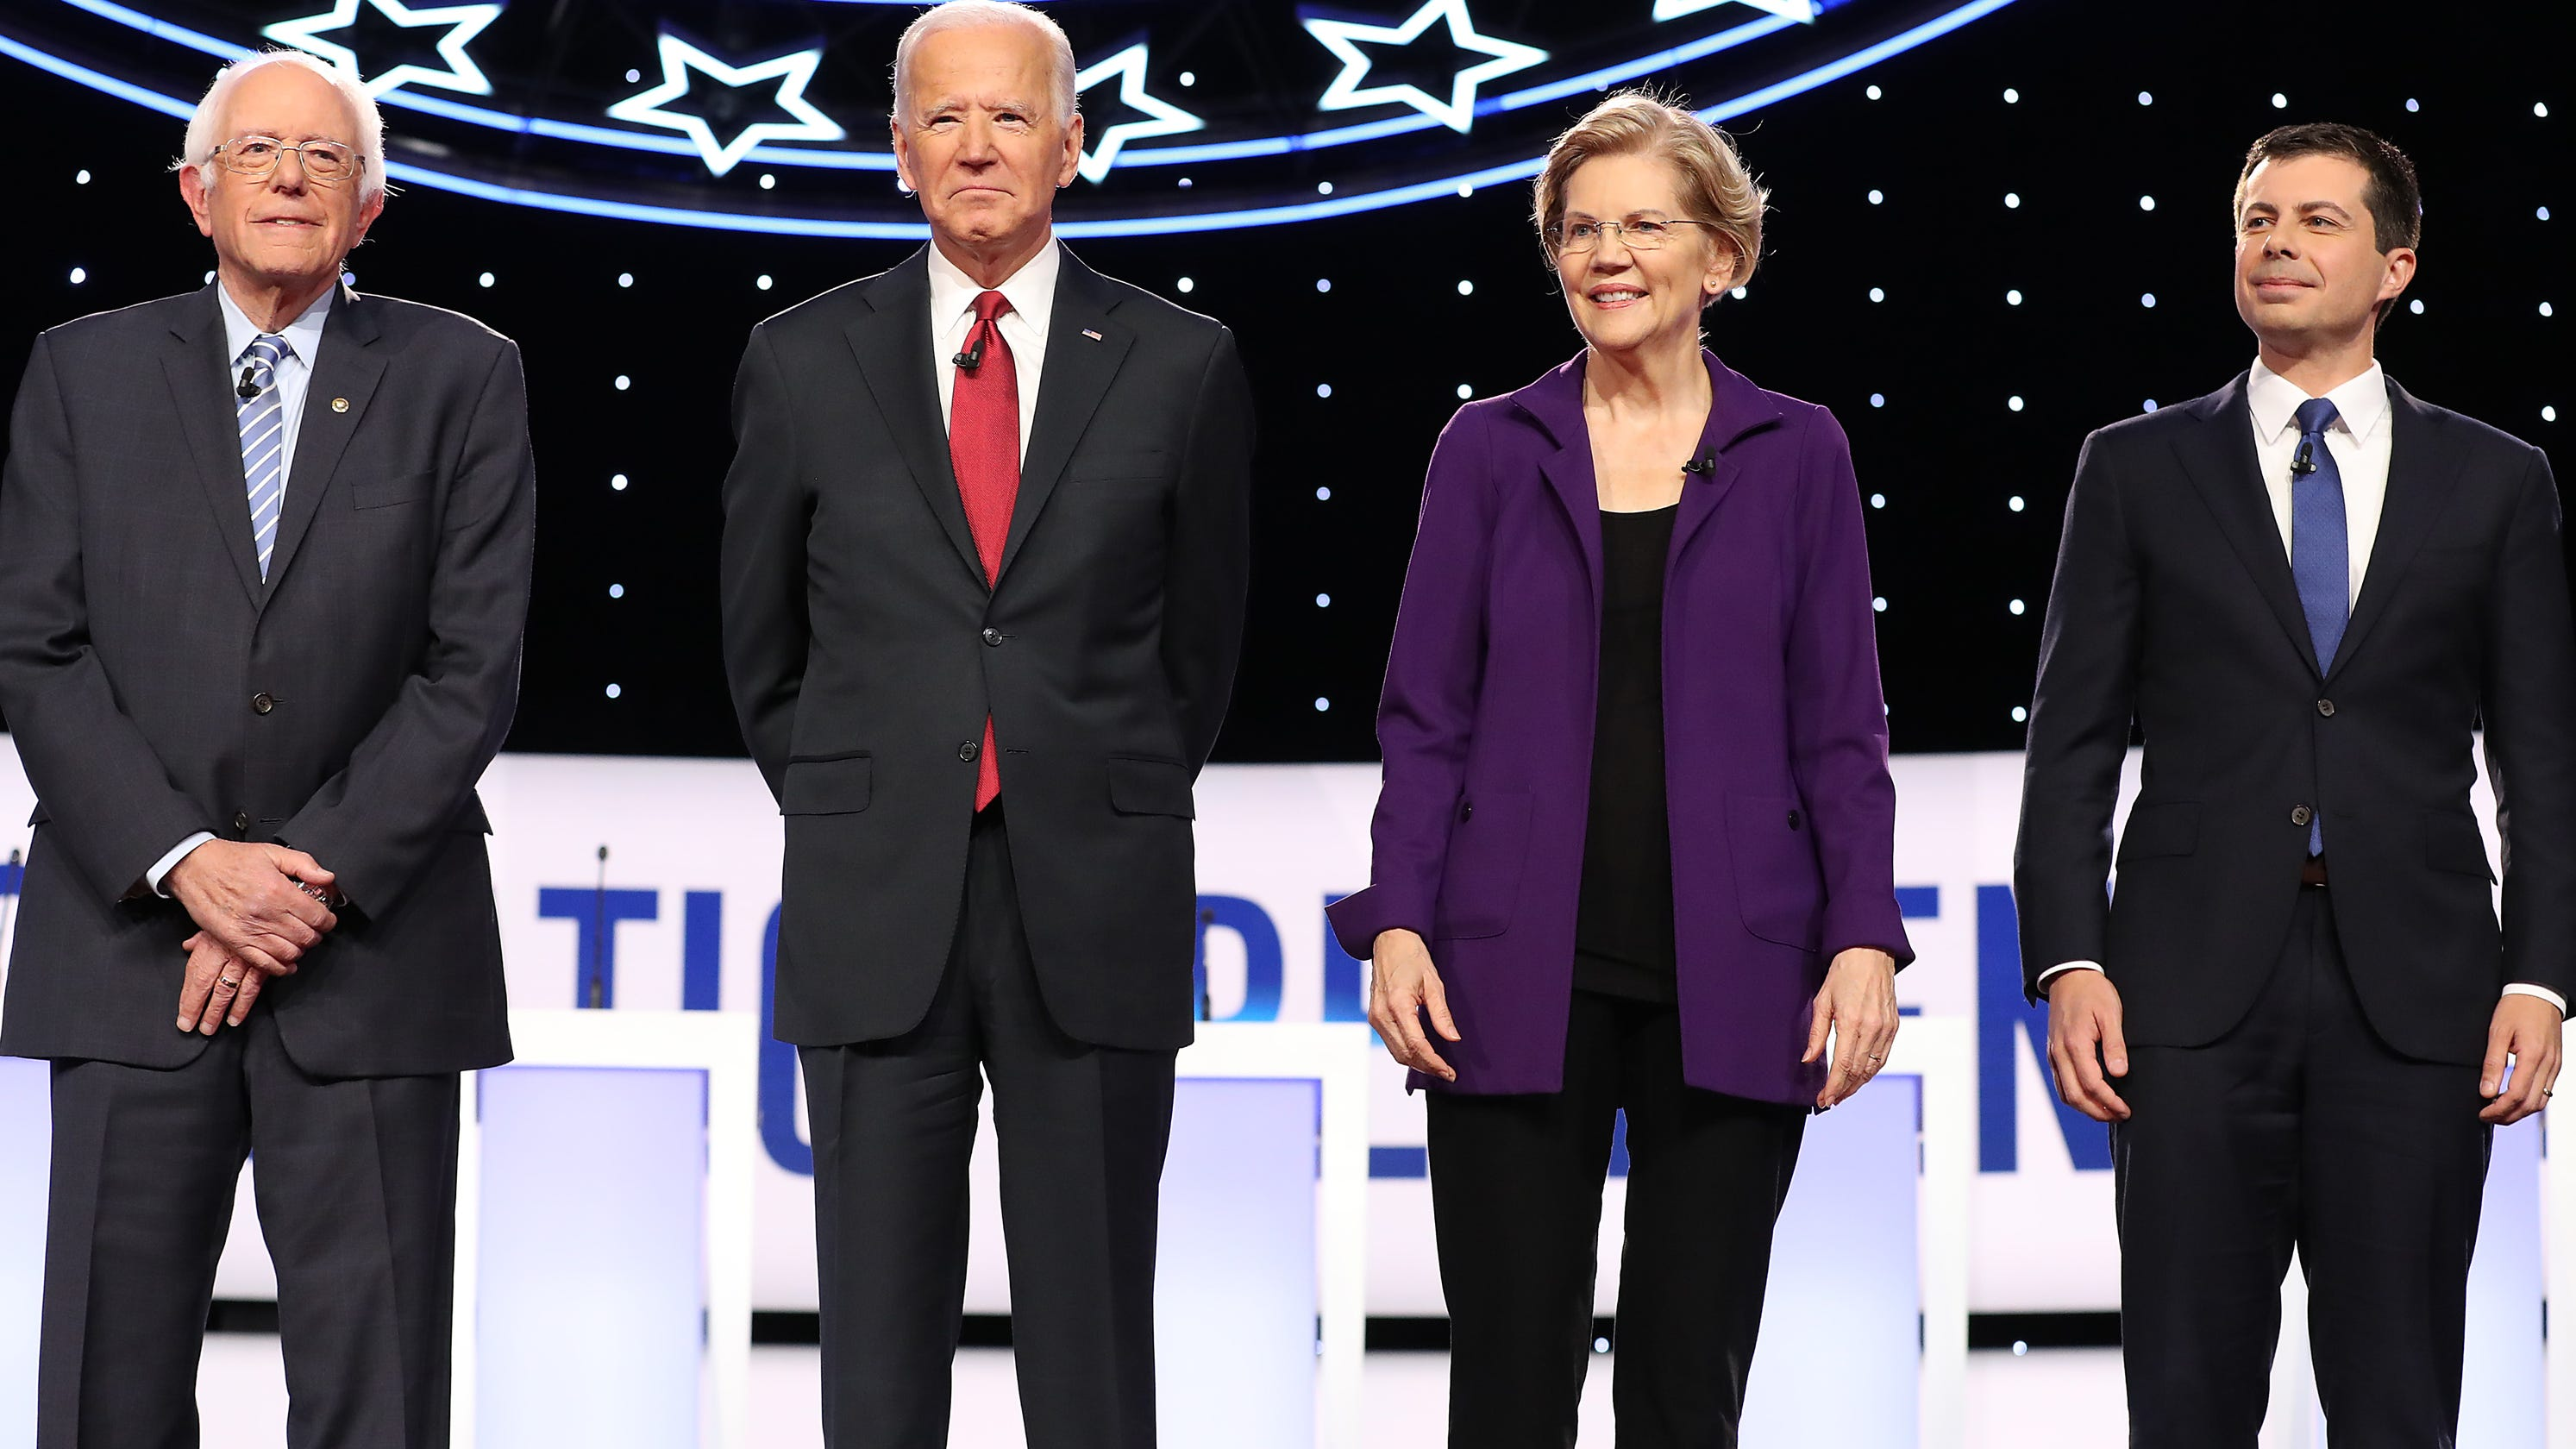 2020 Election: 5 things we learned from the Democratic debate in Ohio